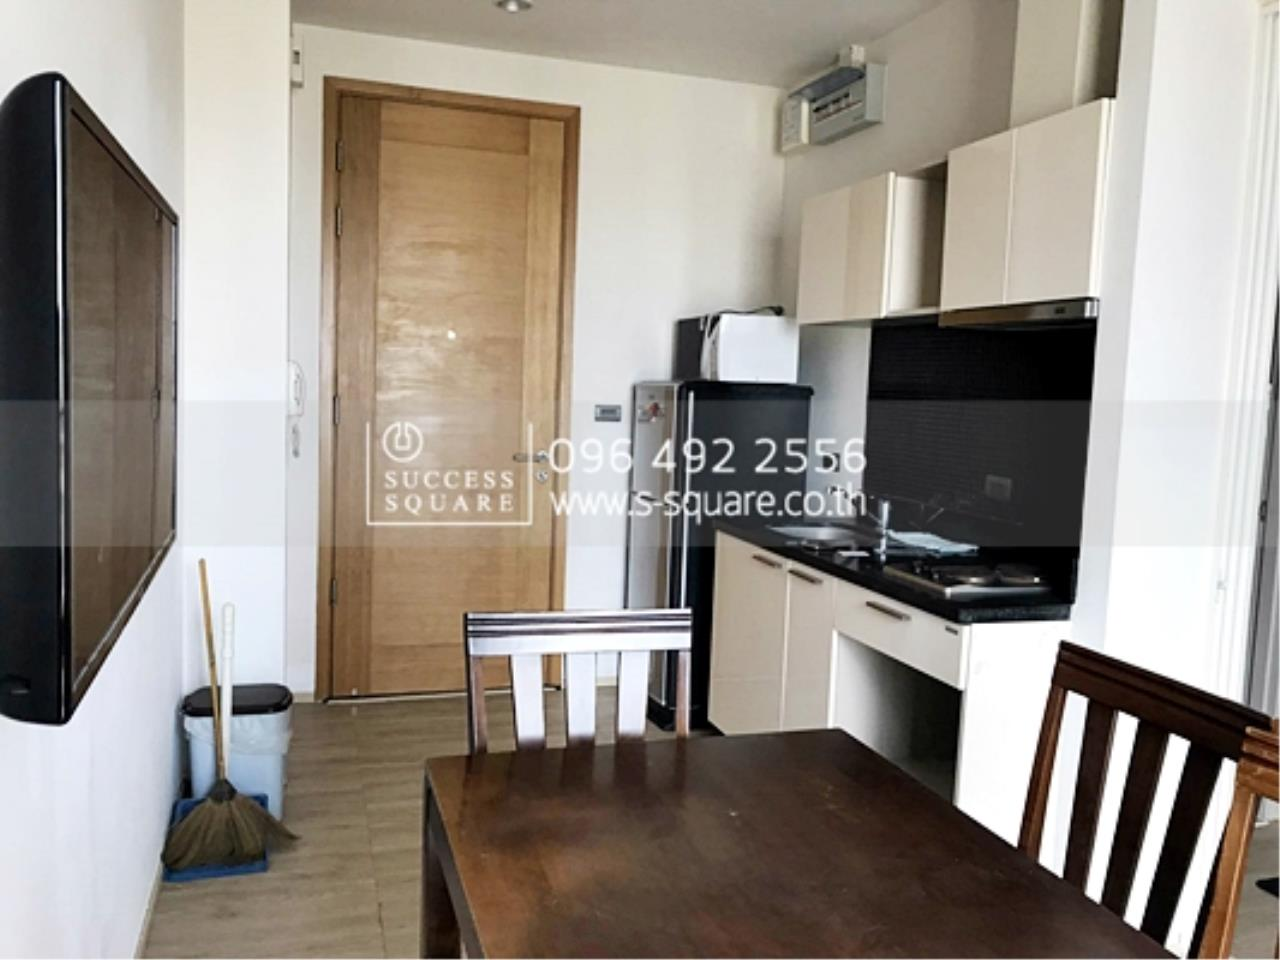 Success Square Agency's Fuse Sathorn-Taksin, Condo For Rent  3